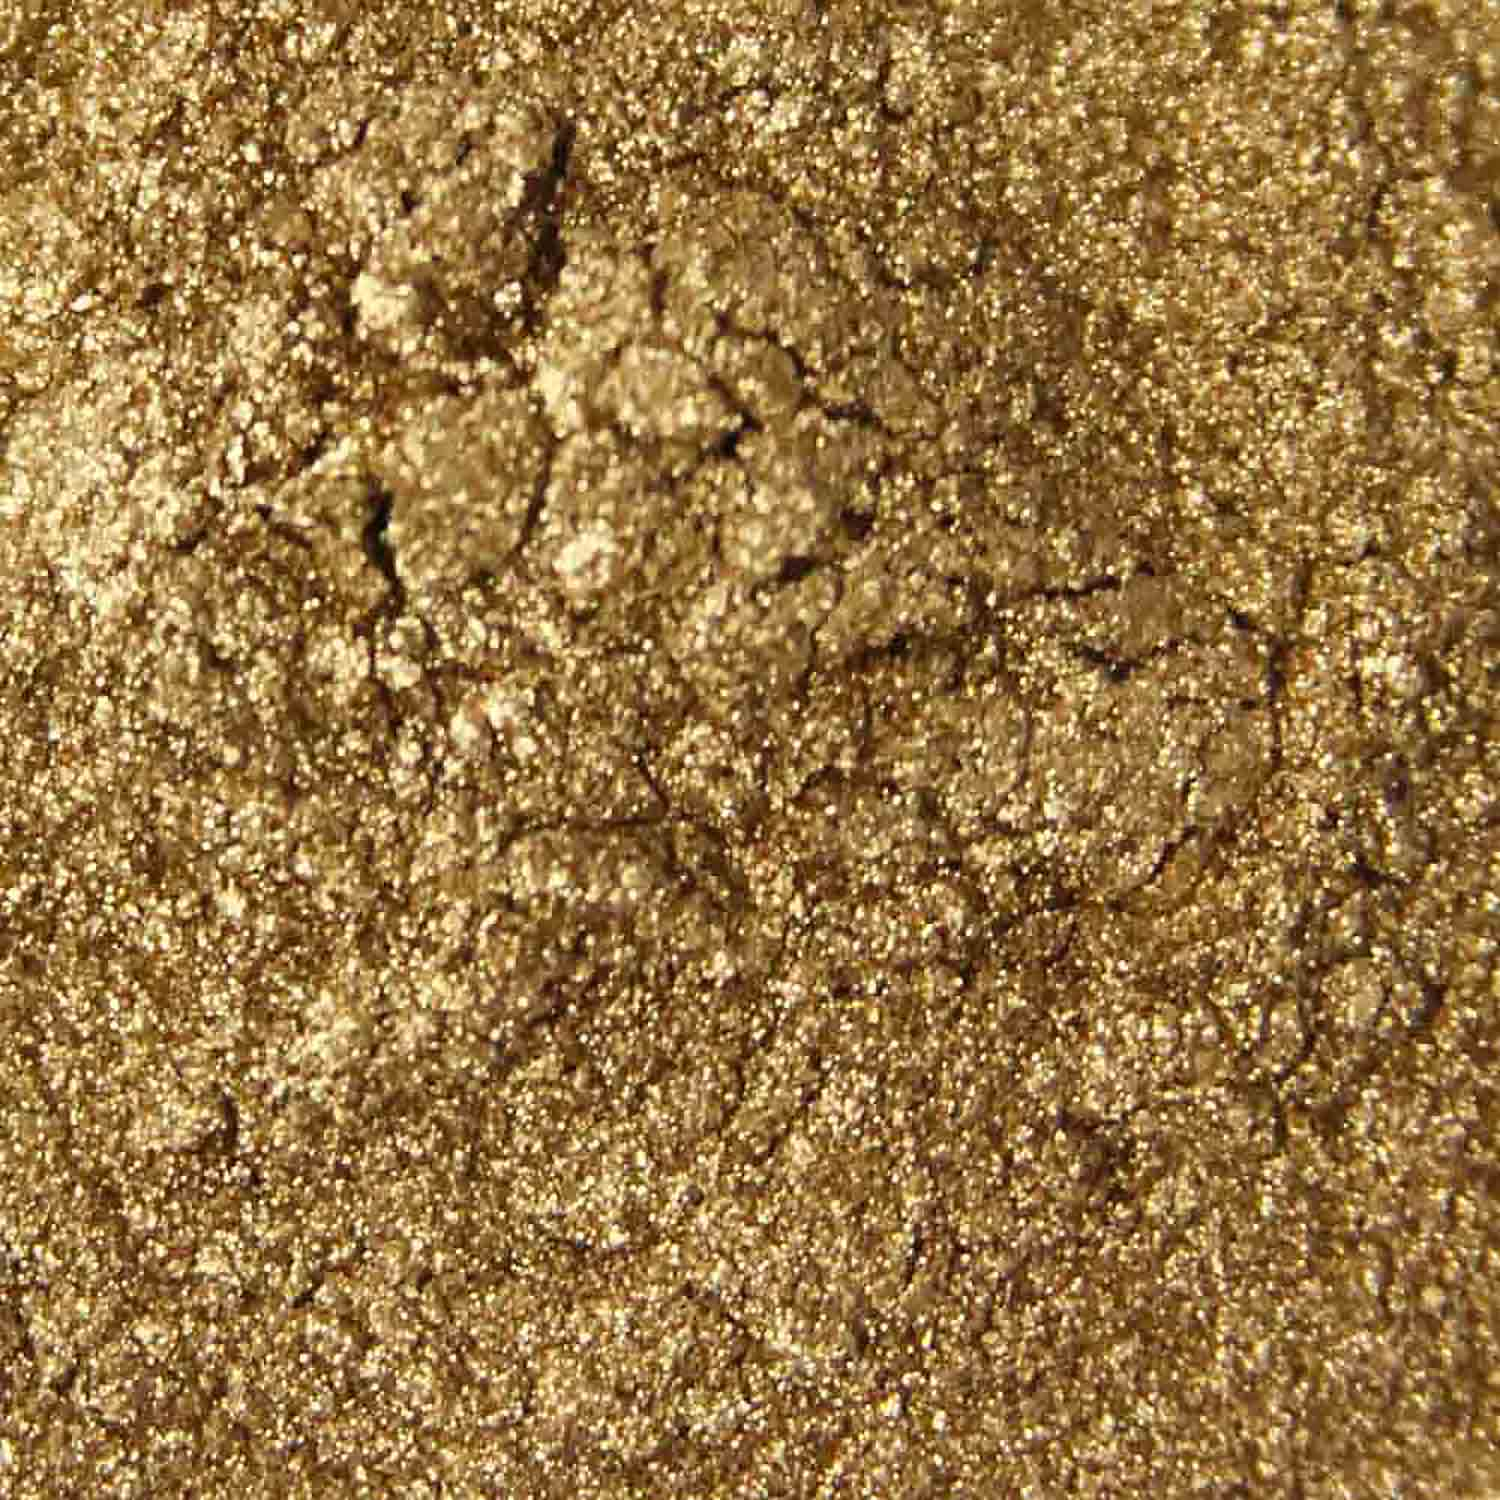 Metallic Gold Dust